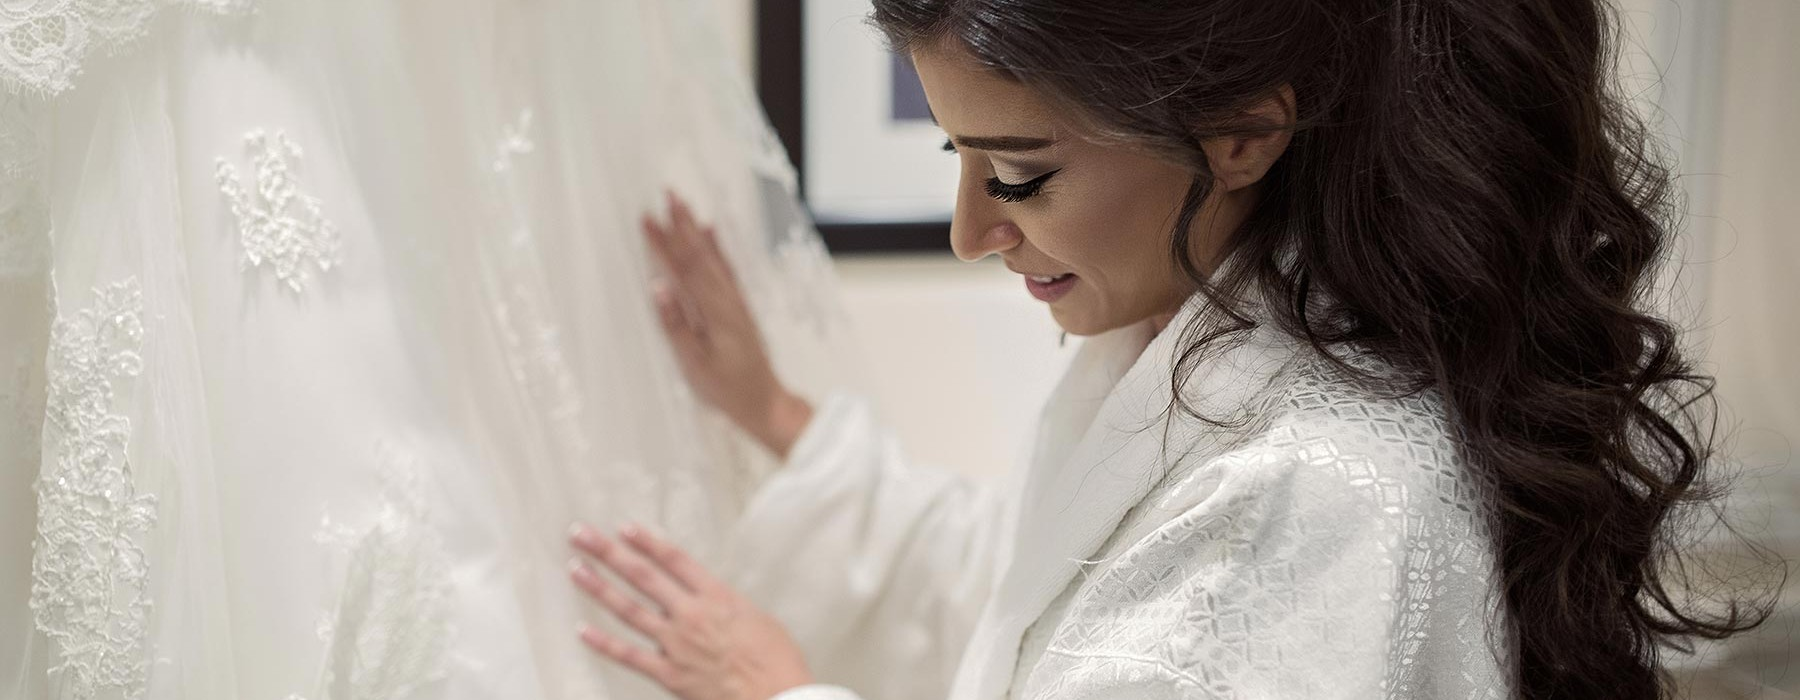 Arab wedding photo sessions Dubai